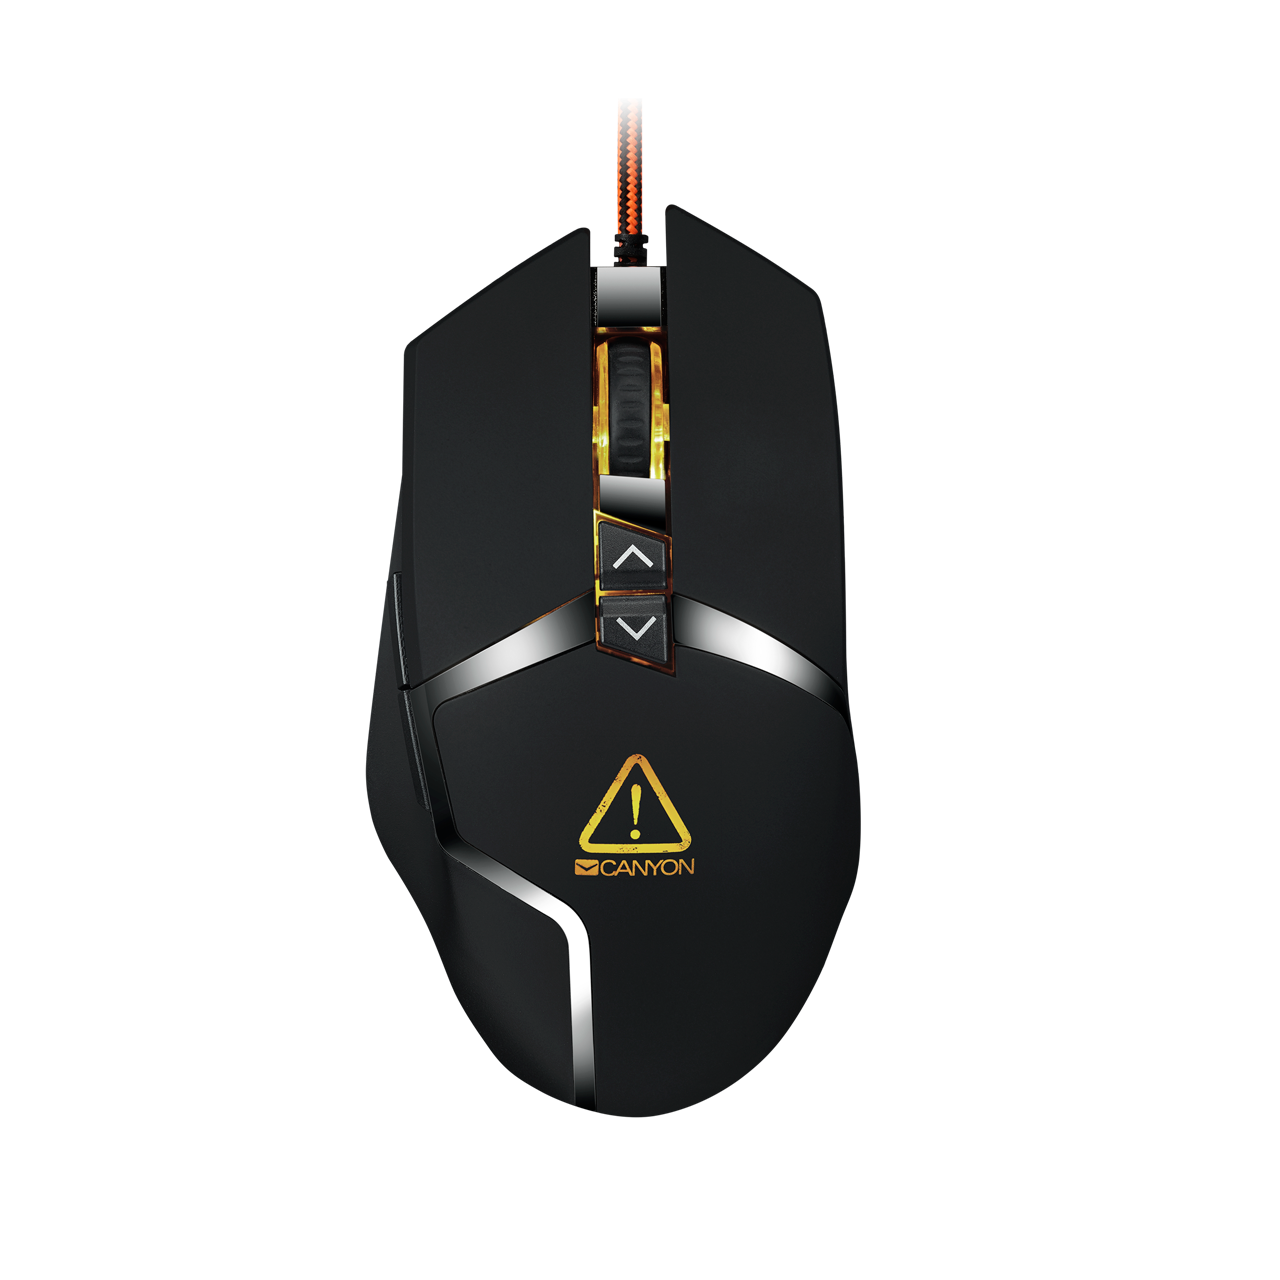 CANYON GAMING WIRED MOUSE OPTICAL - HitechDoctor.com